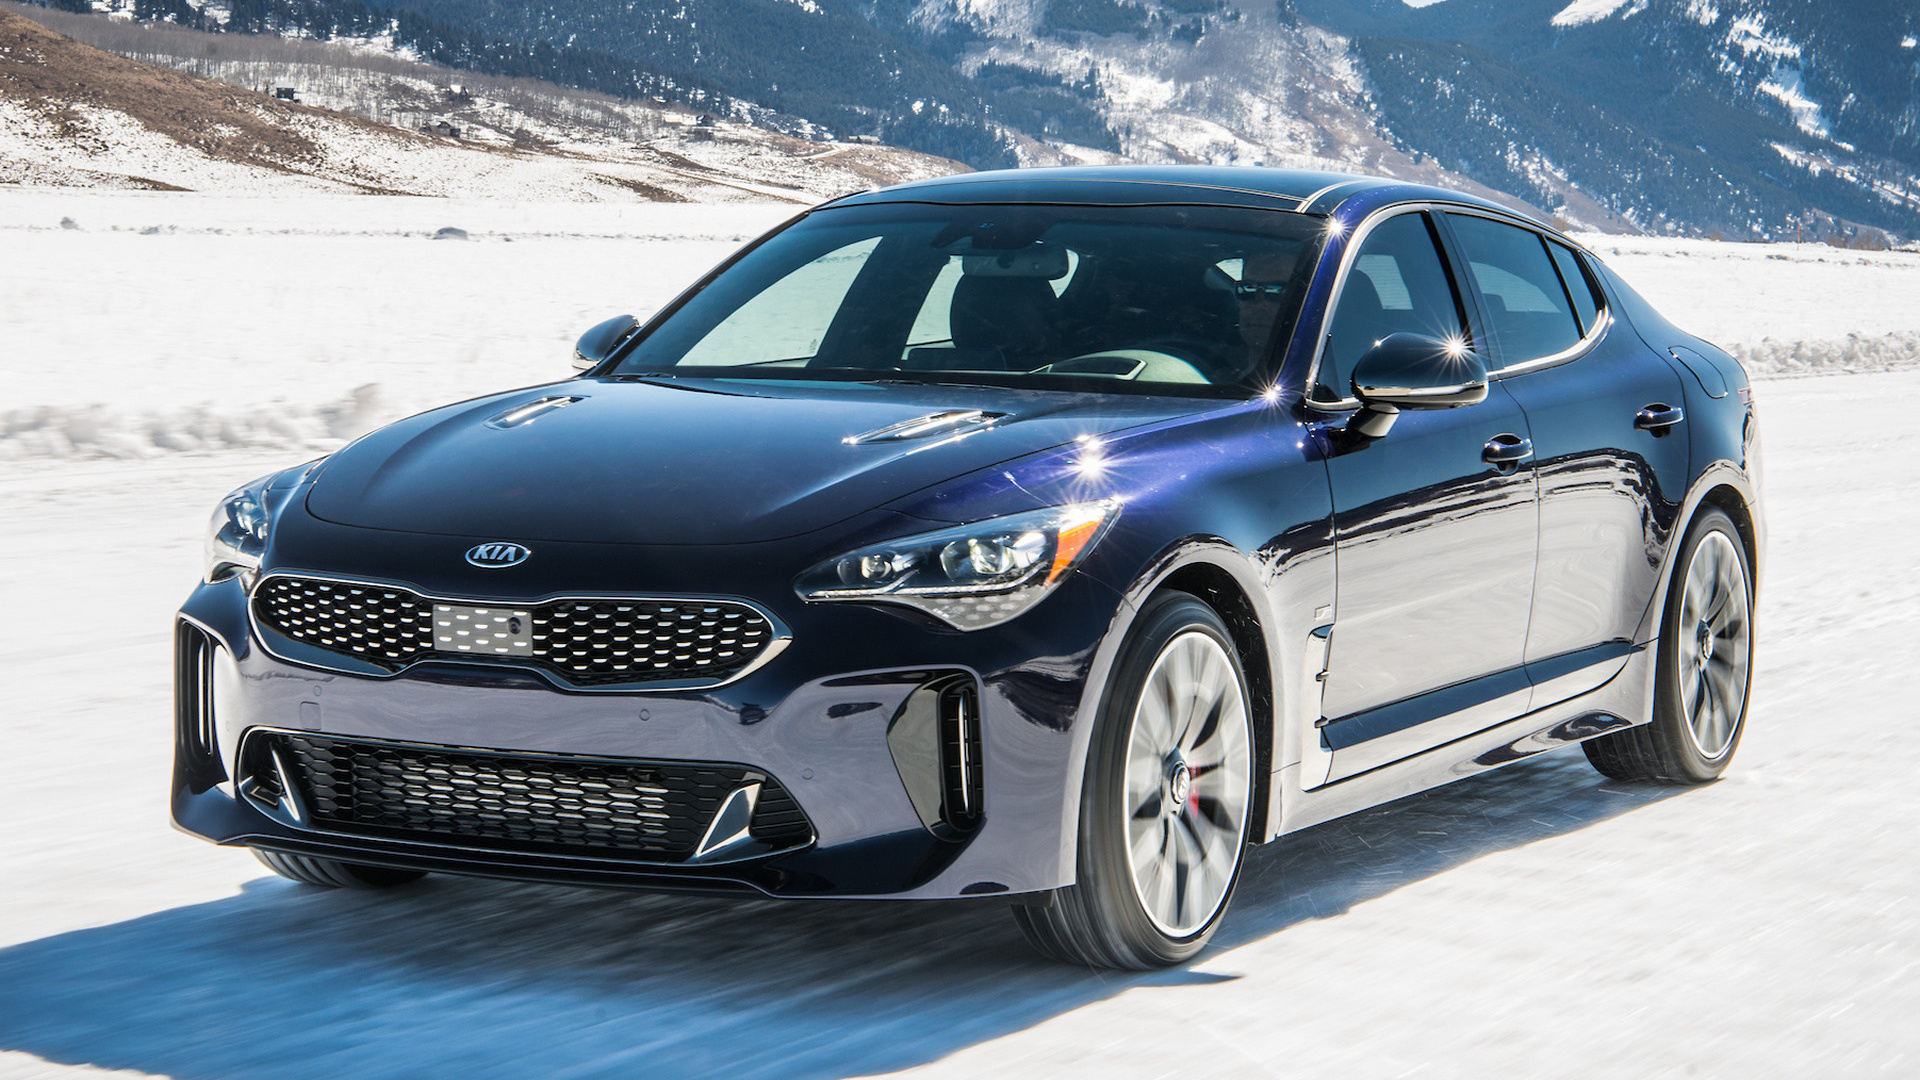 Kia Stinger Gt Atlantica 2018 Us Wallpapers And Hd